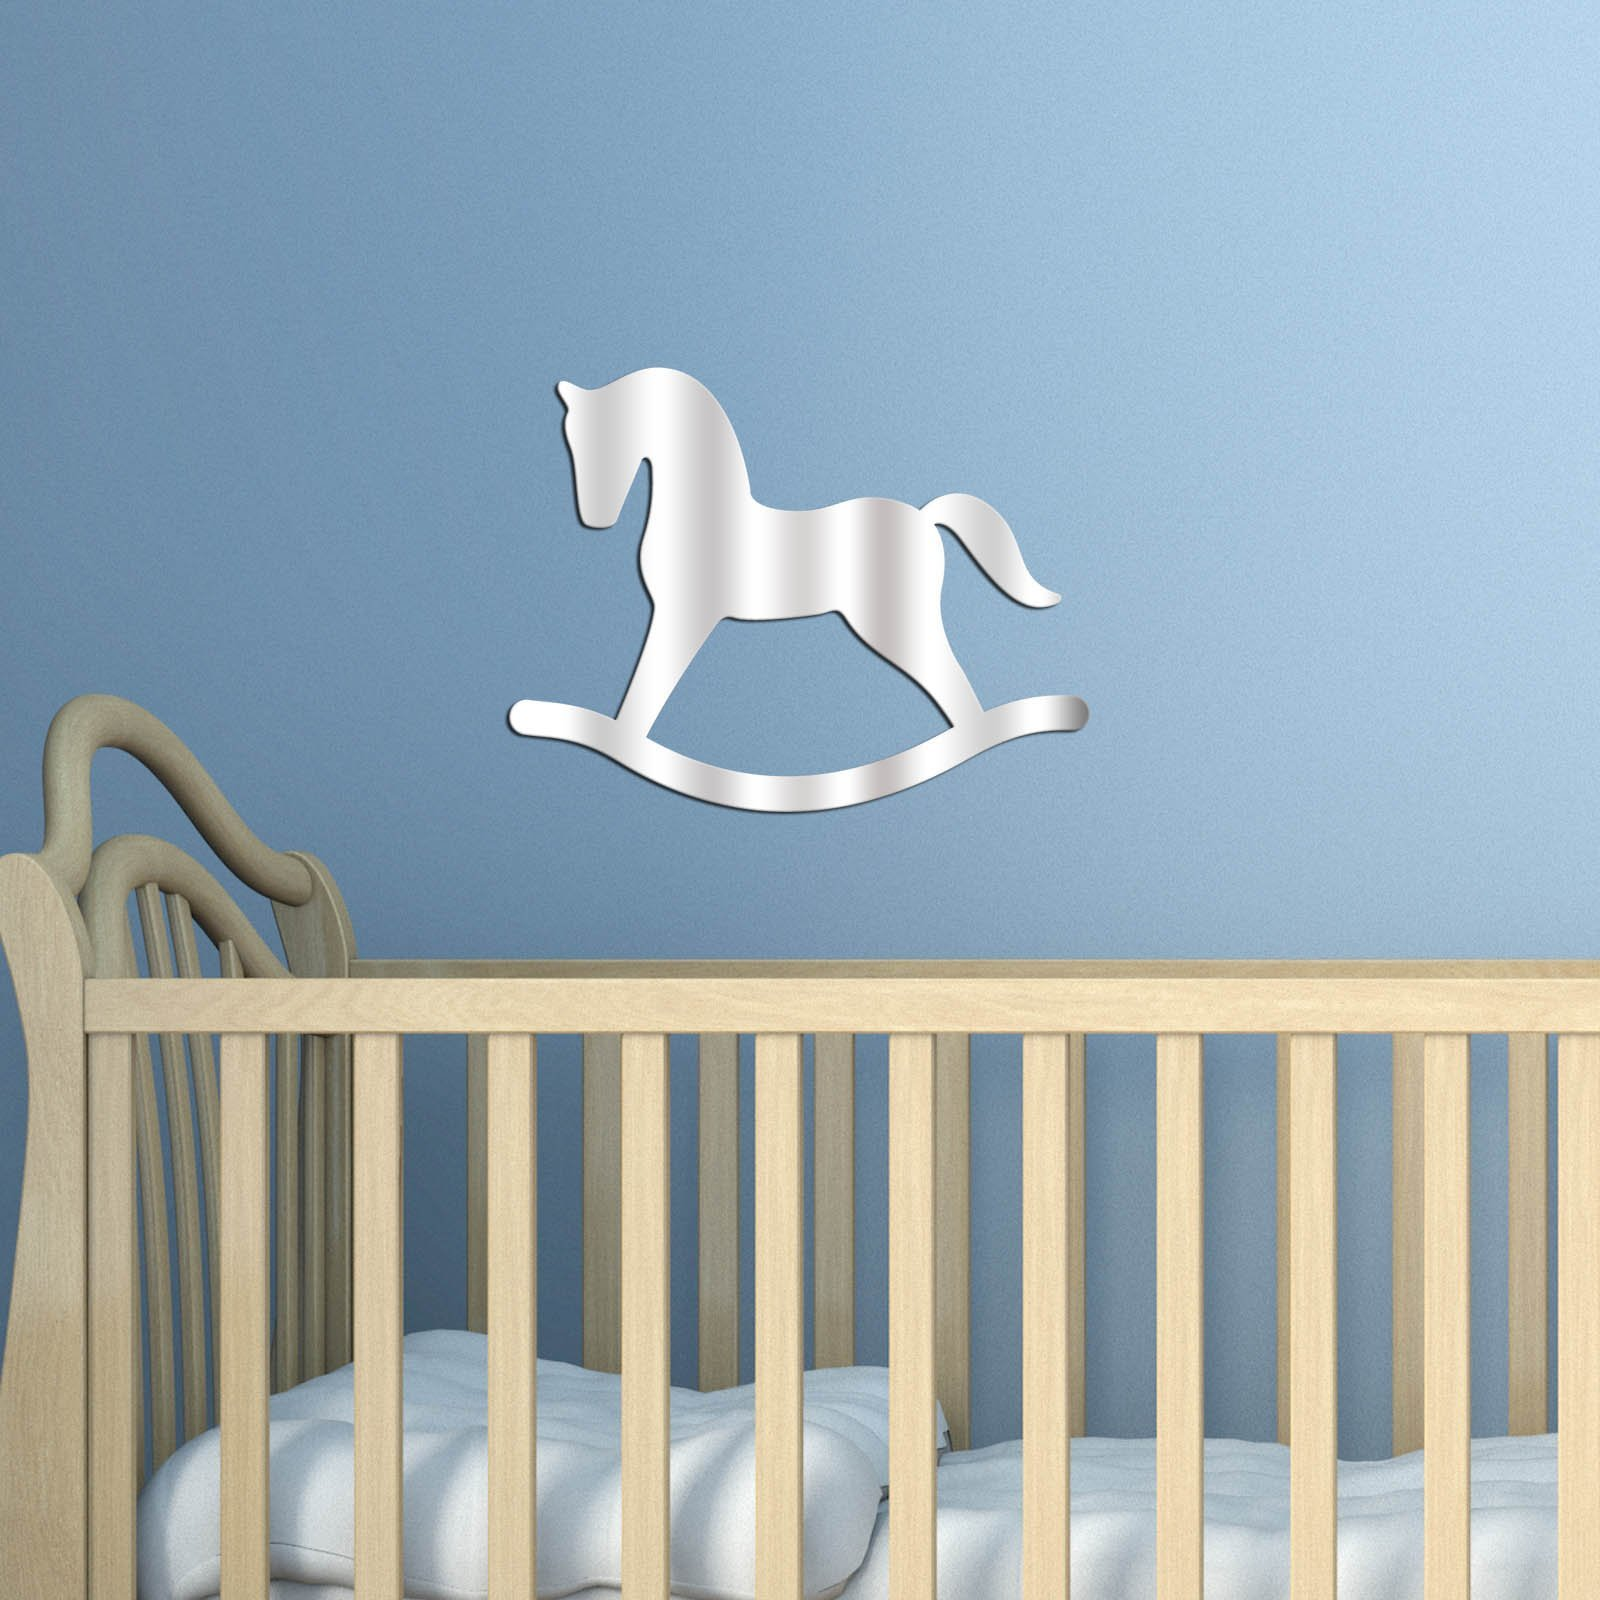 Decorative Removable Wall Sticker Mirror PLEXIGLASS (11'' x 8.3'') Number of Pieces 1 / Design Geometric Modern Pattern Horse Animal Toy / Background Decoration Perfect Design For Home, Office, Room